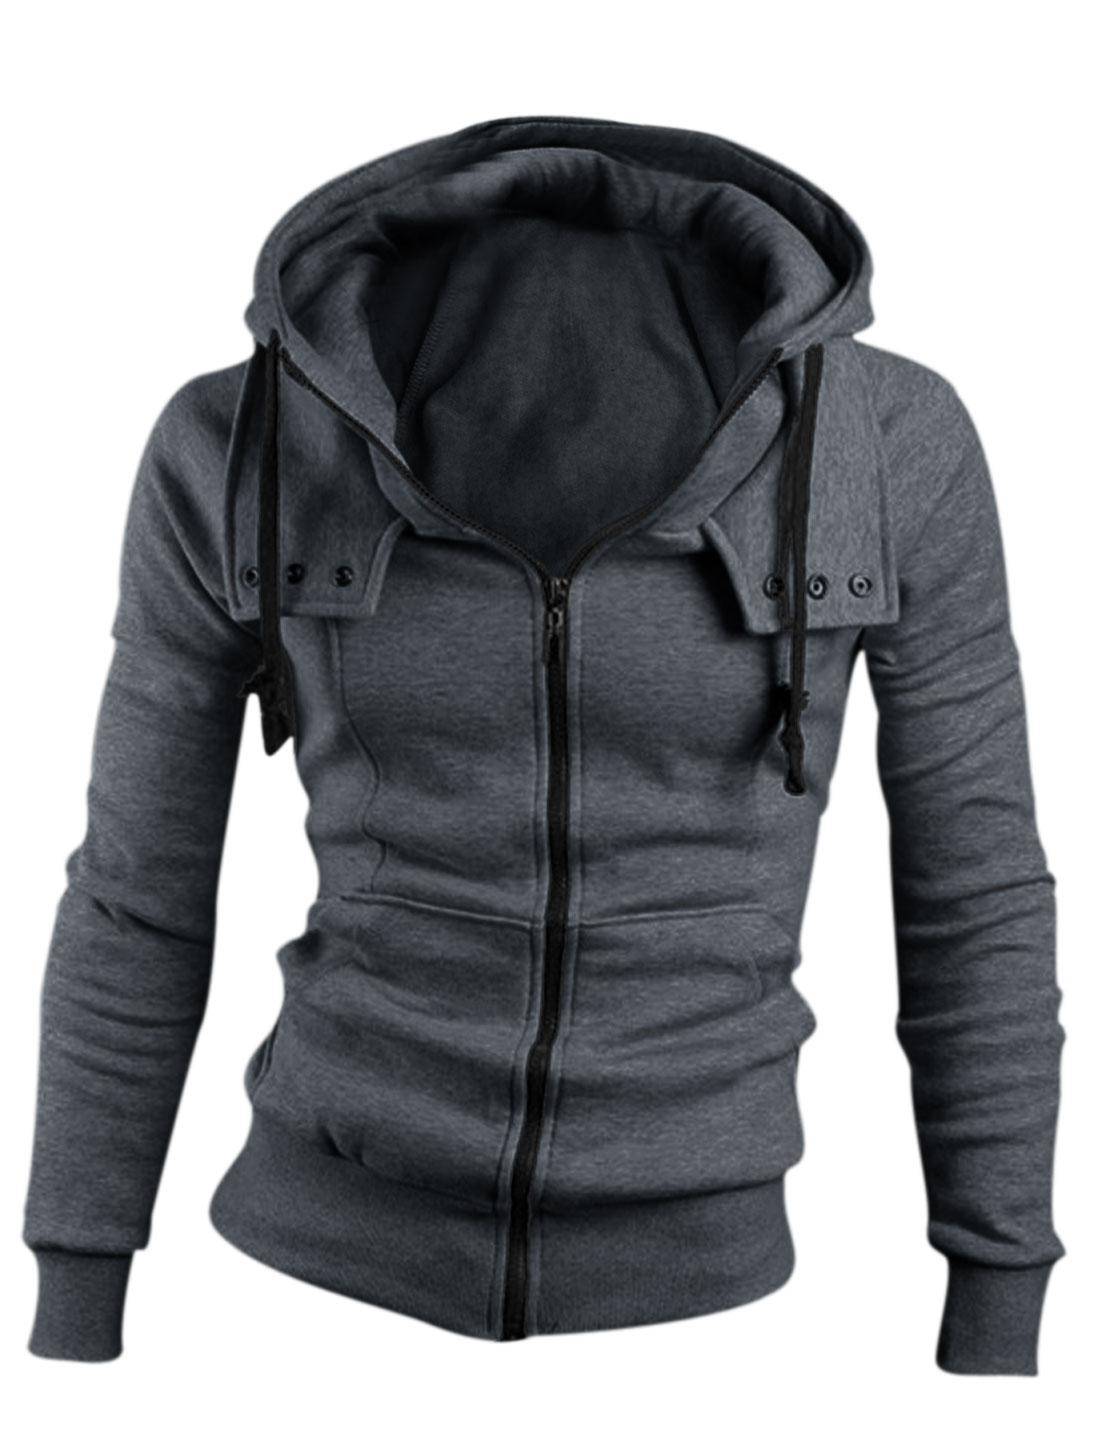 Man Front Pockets Zipper Closure Drawstring Hooded Jacket Dark Gray M